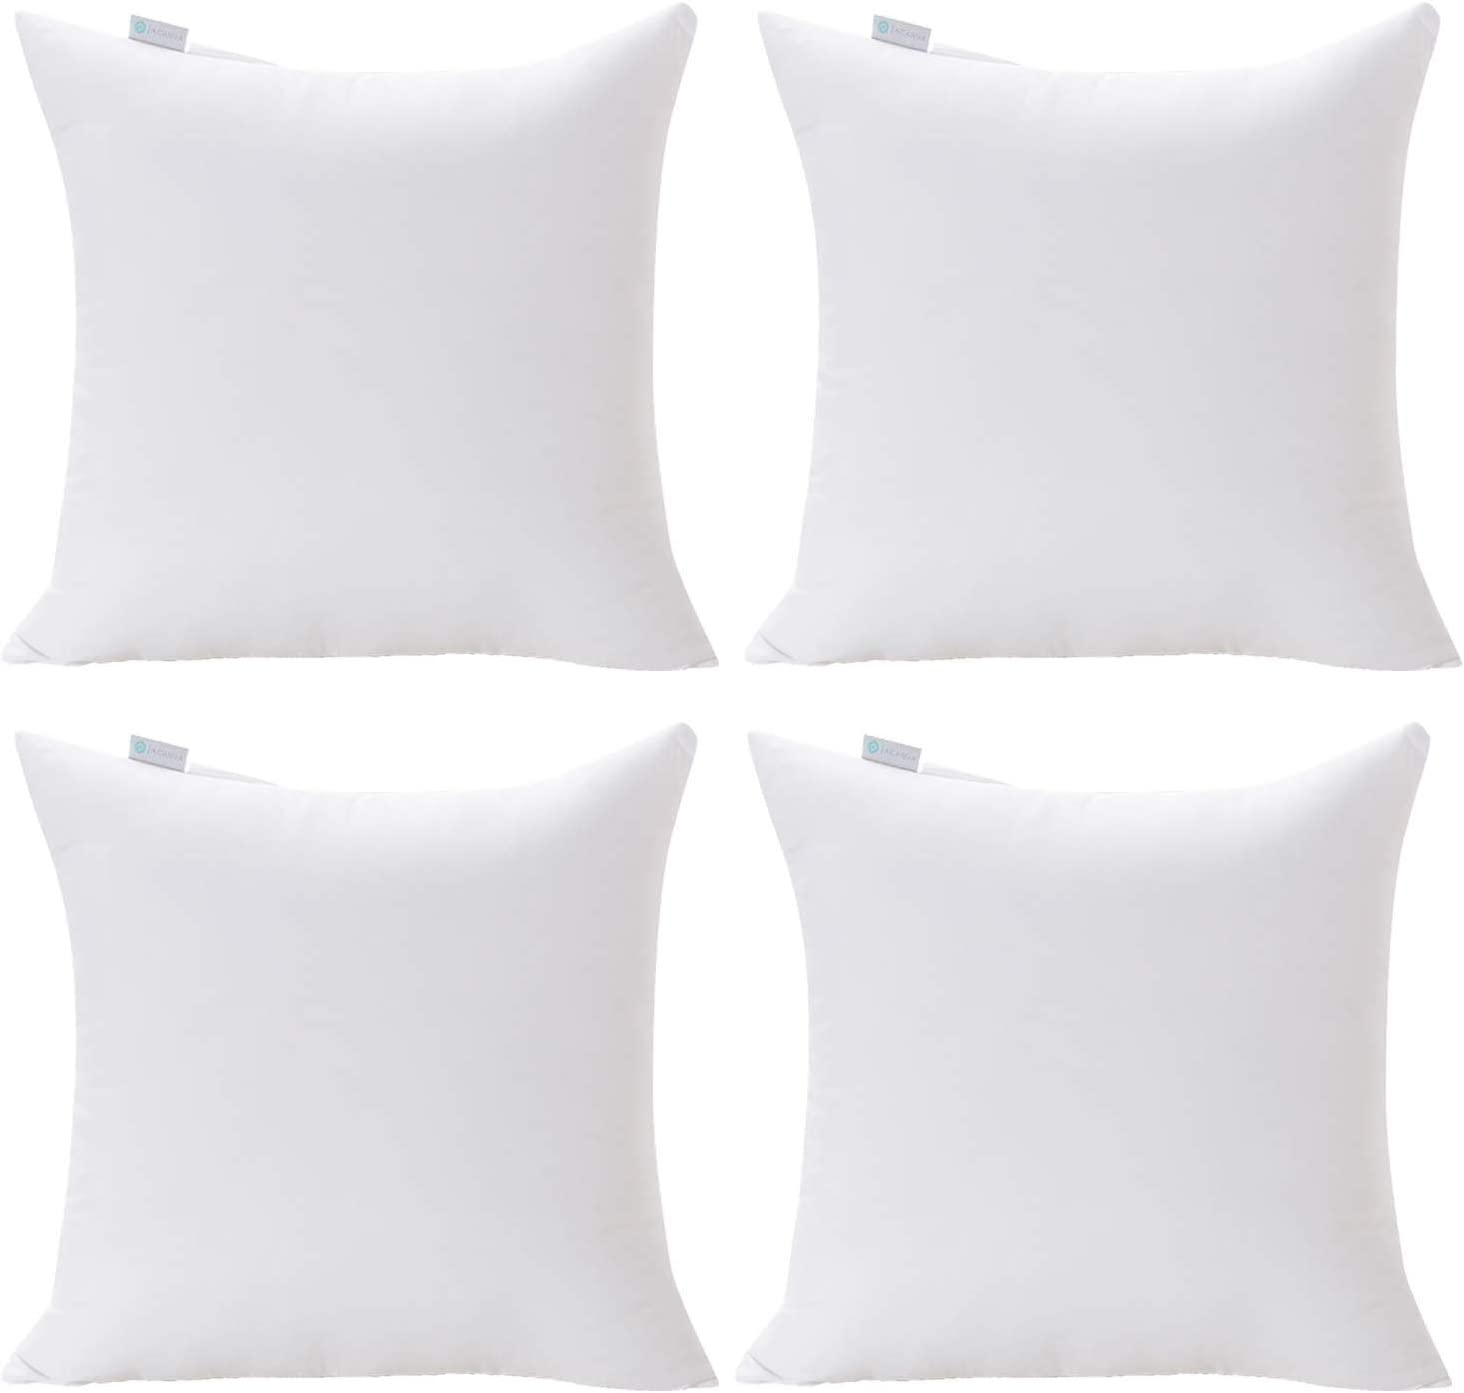 "Acanva 18 x 18 Premium Hypoallergenic Polyester Stuffer Square Form Sham Throw Pillow Inserts, 18""-4P, 2020 Newer Version"